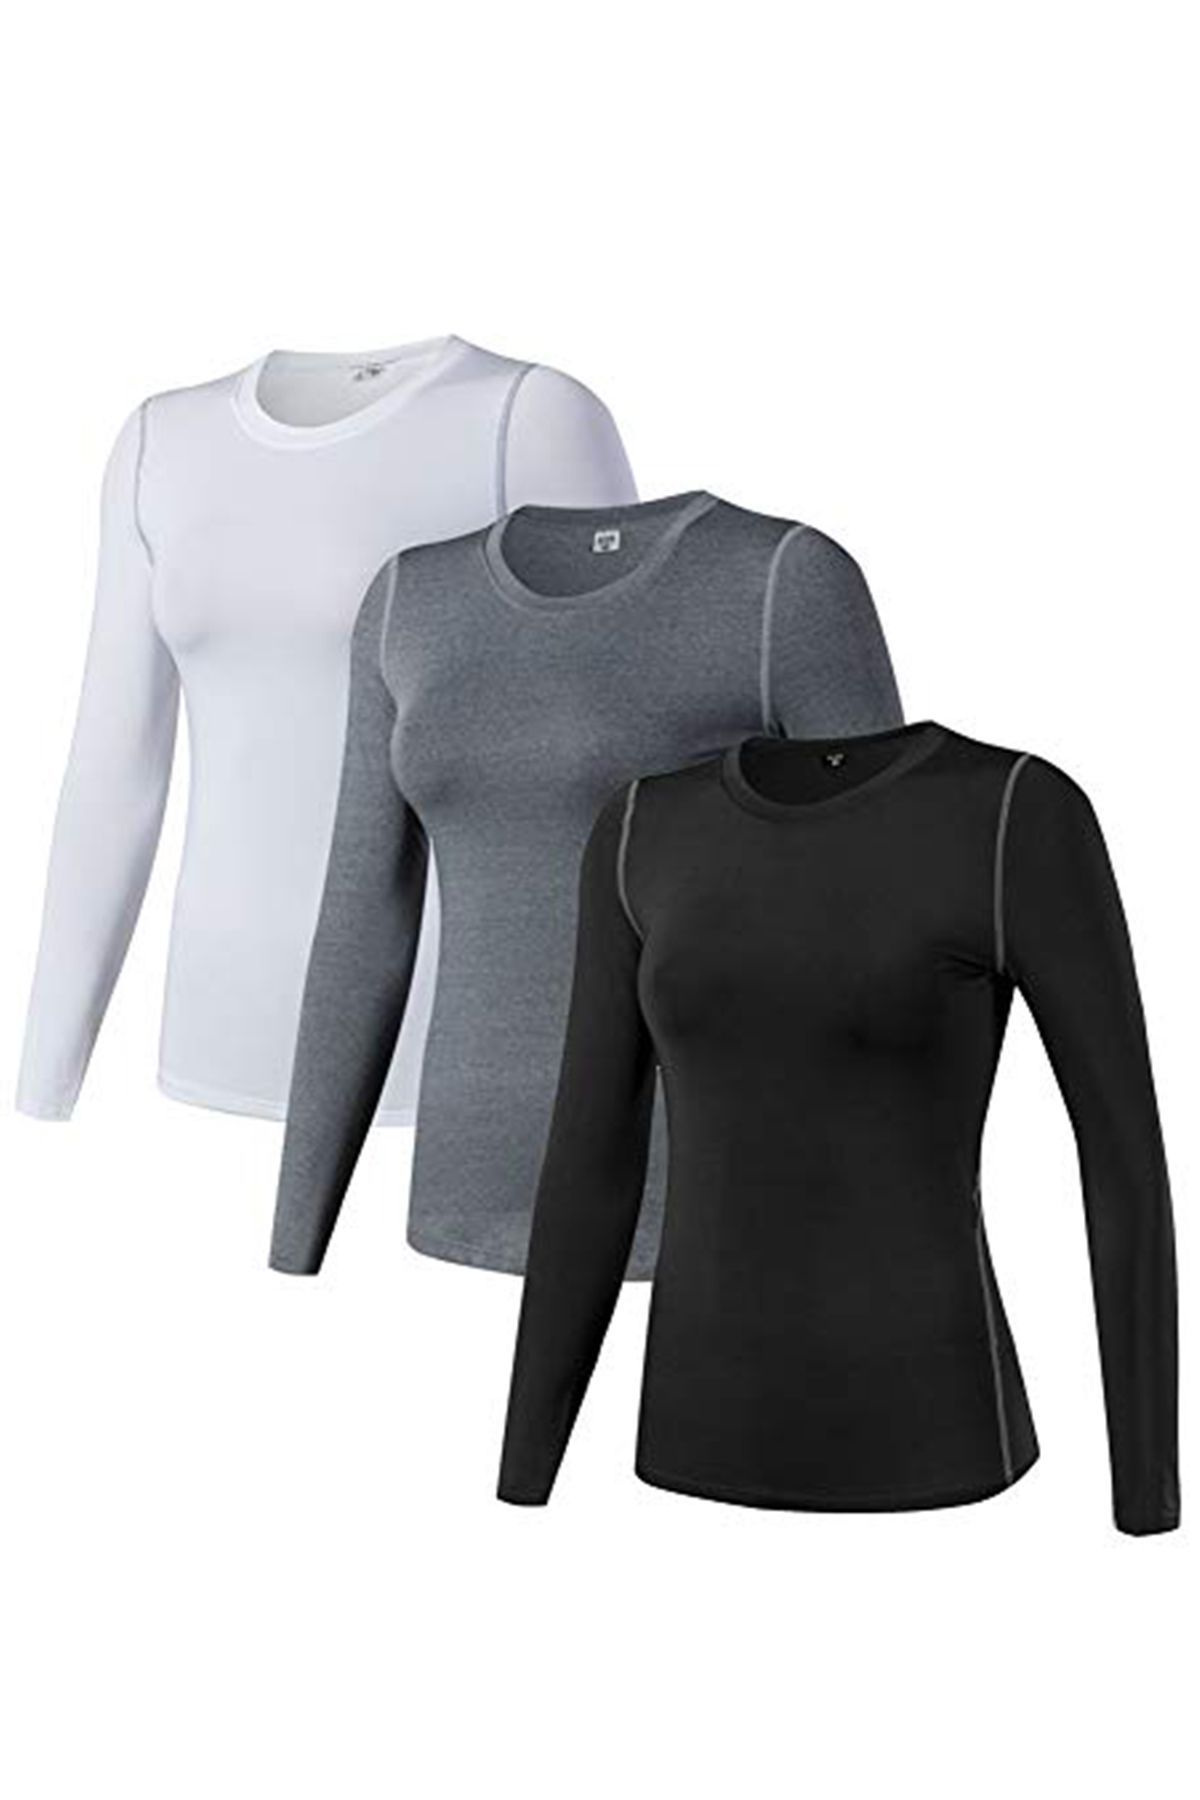 6ad8d479 Best Places to Buy Cheap Workout Clothes Online 2019 - Affordable Workout  Clothes Brands